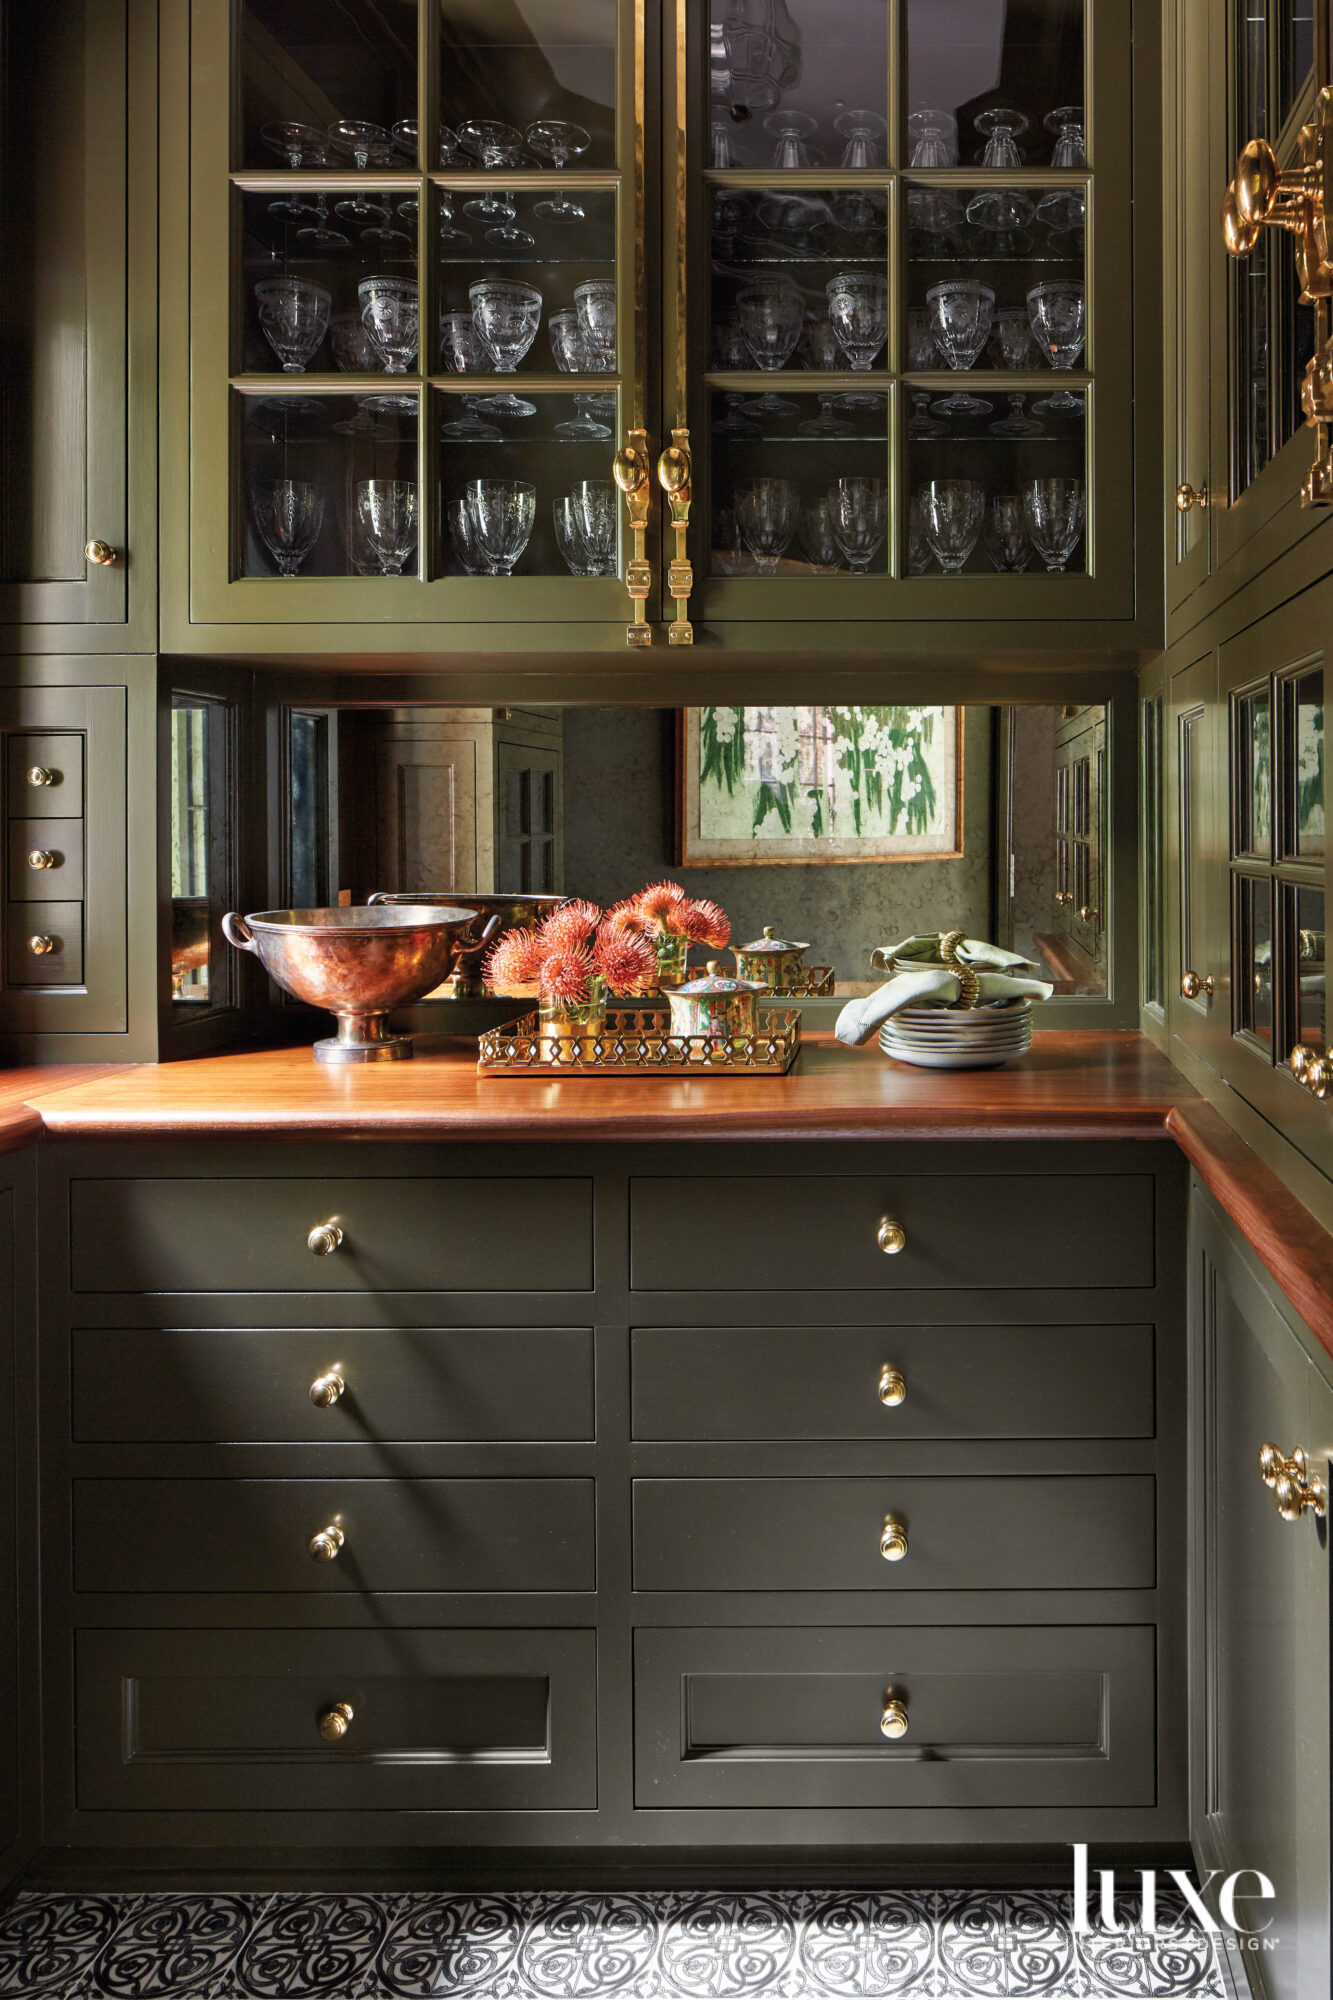 green and wood pantry with flowers and barware